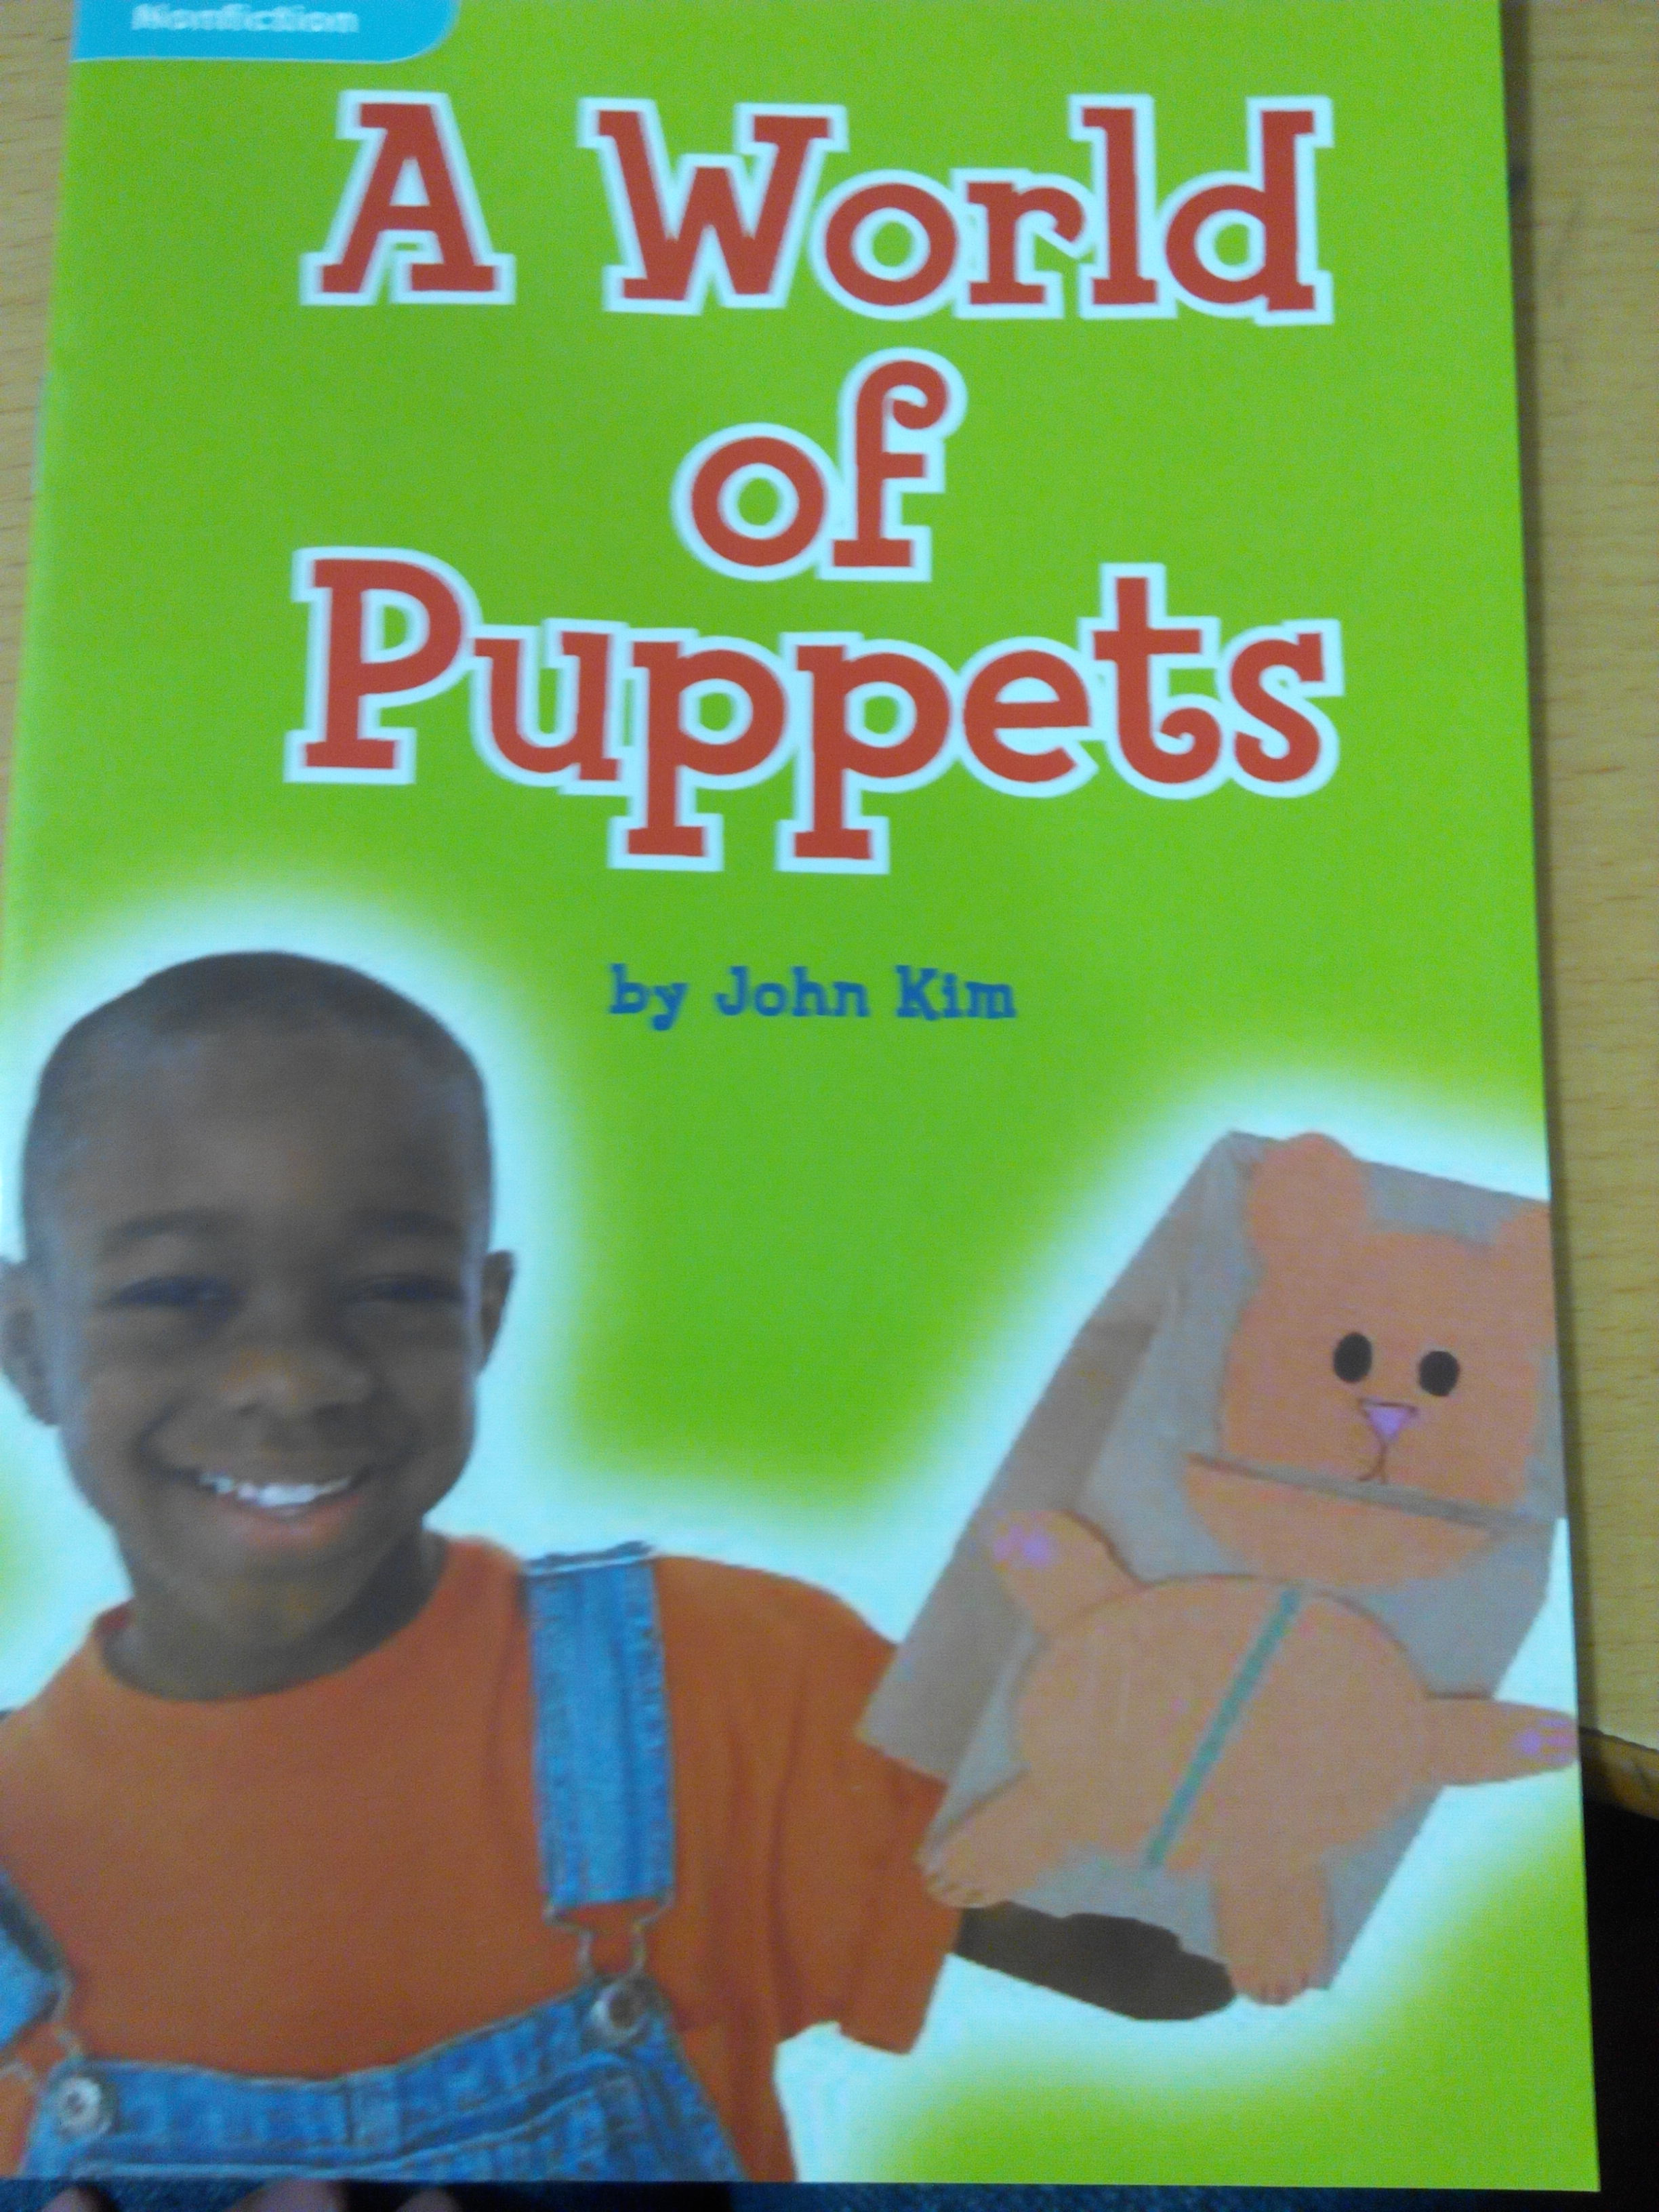 A World of puppets